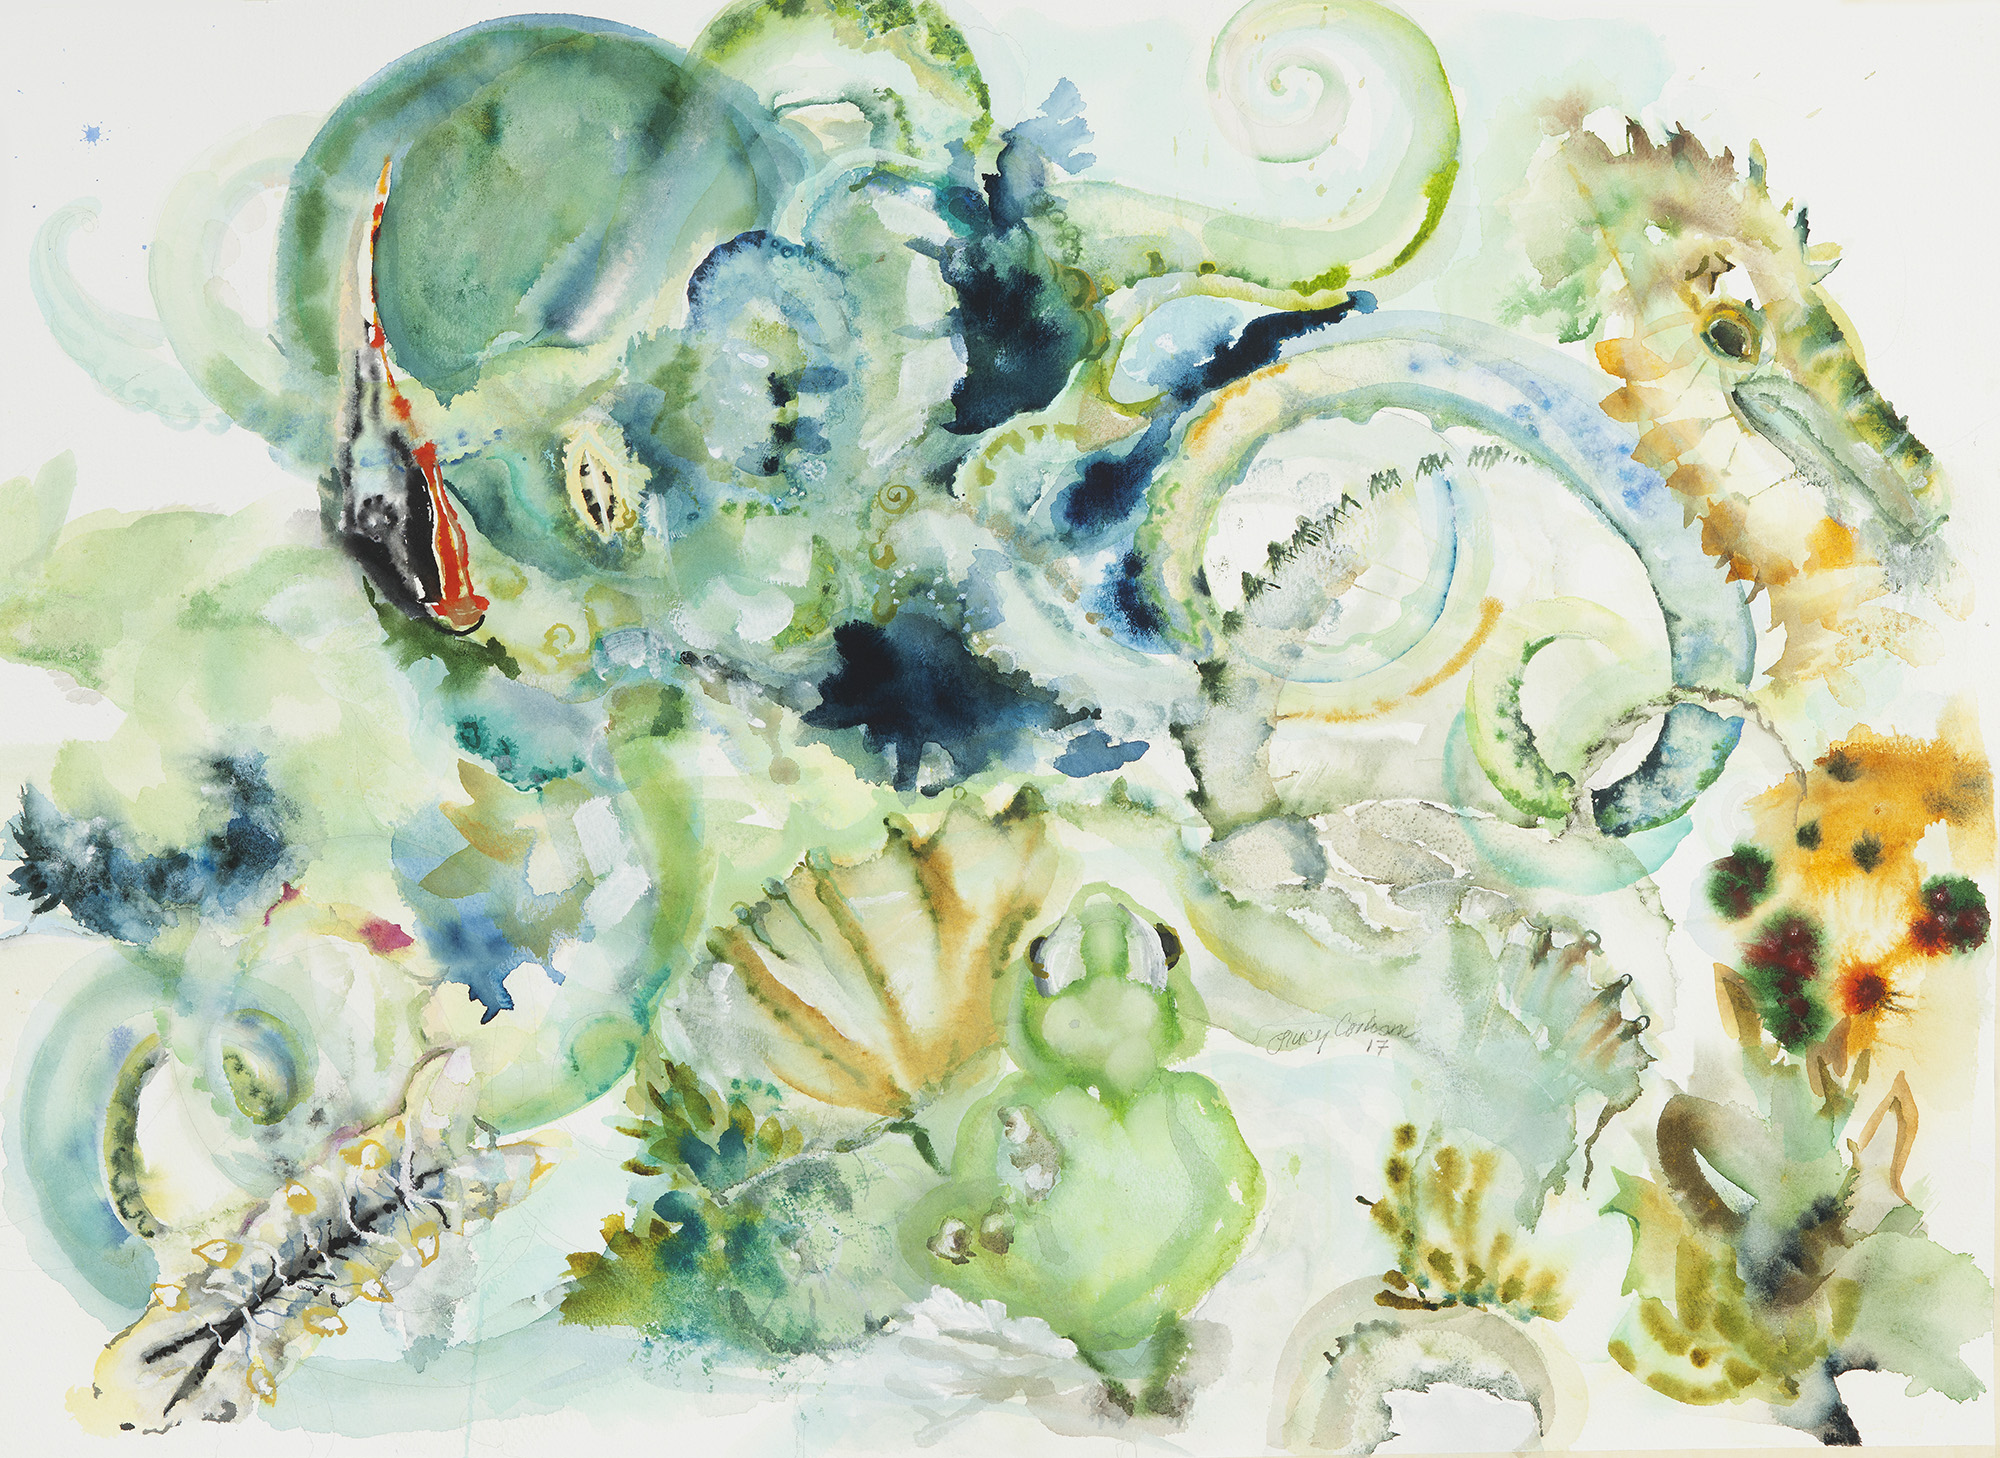 Octopus, 2017, Watercolor on paper, 26 x 30 in.